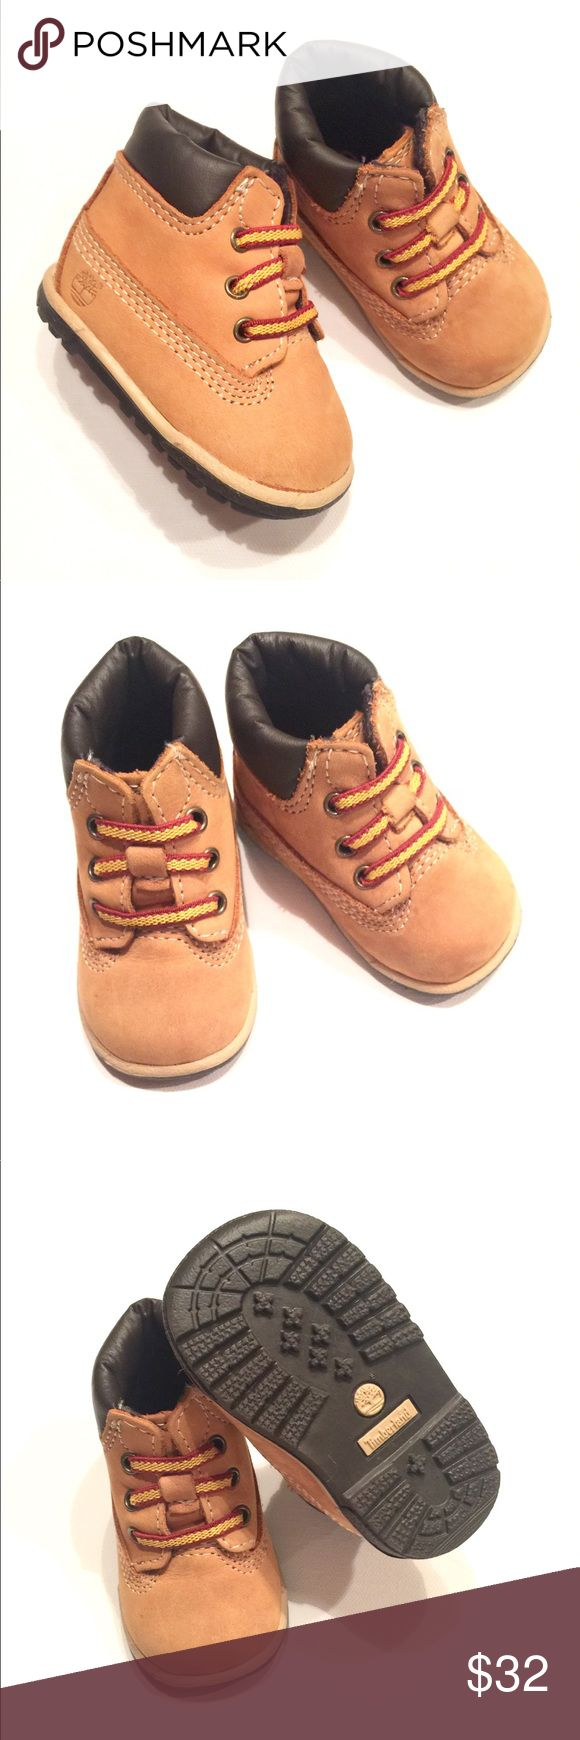 🐯Timberland Baby Boots🐯 🐯Timberland Baby Boots. NWOT wheat nubuck boots with dark brown rubber soles. Size 0 🐯 Timberland Shoes Boots